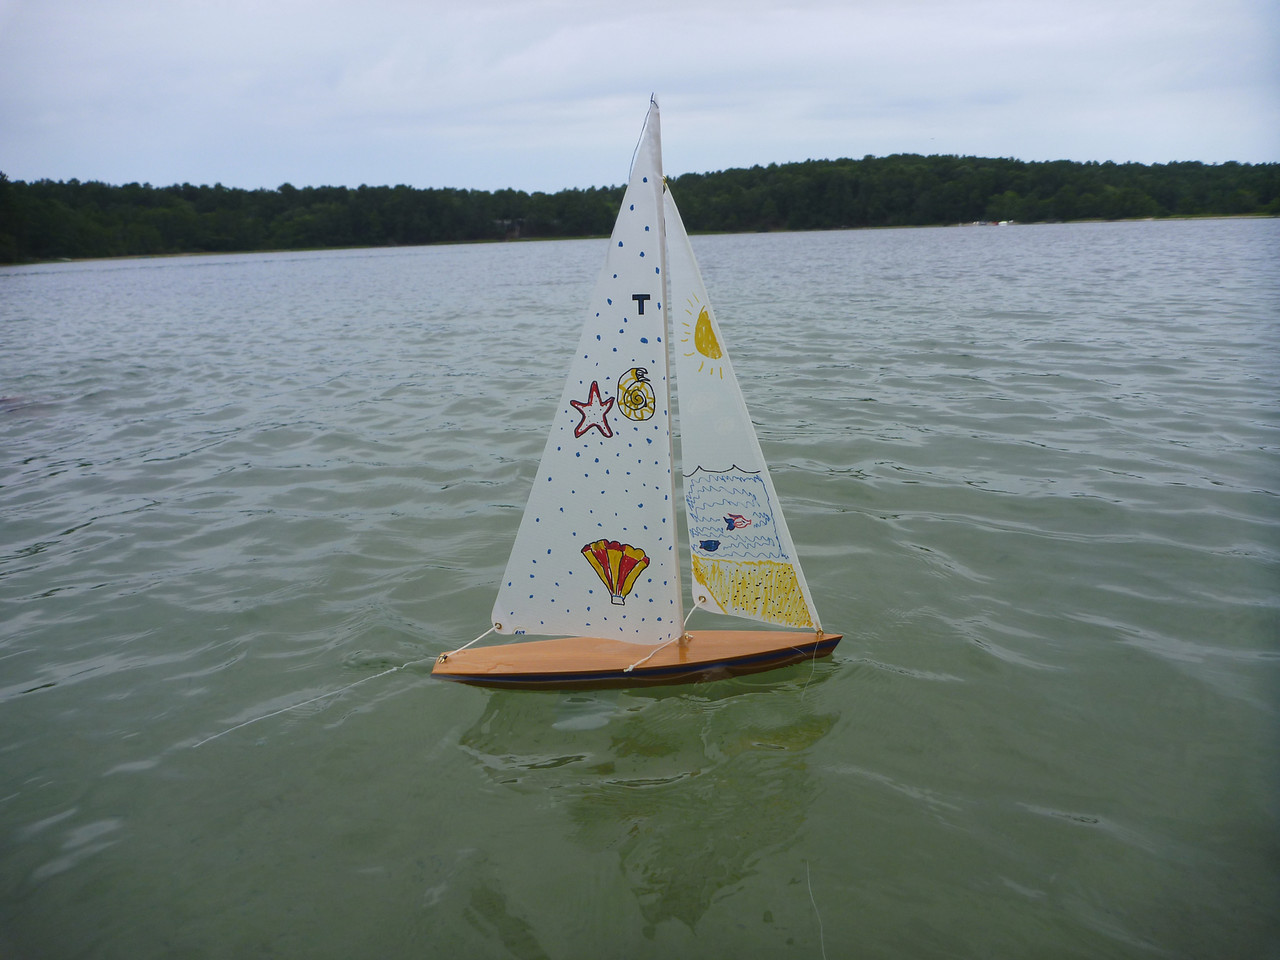 rc sailobat model sailboat